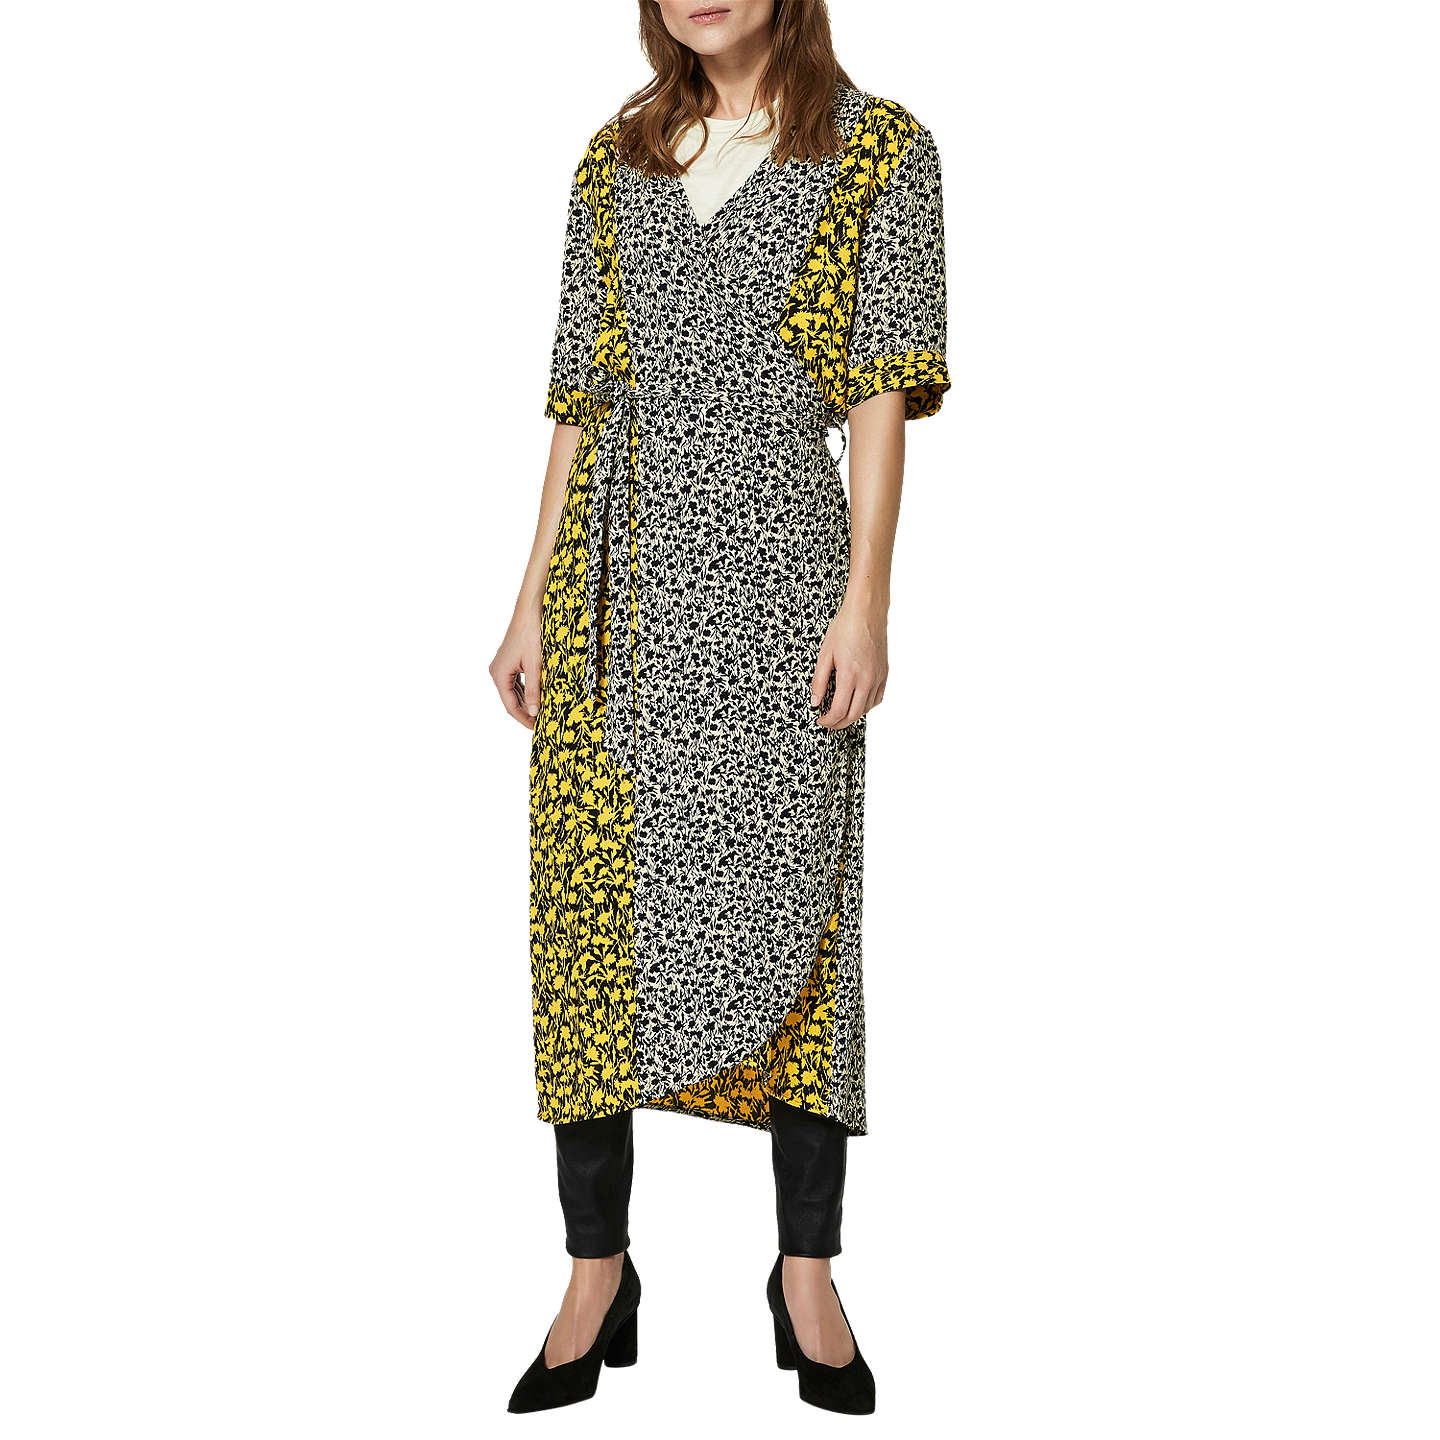 Free Shipping Eastbay Sale Affordable Femme Printed Wrap Dress - Multi Selected Recommend Cheap Online Pay With Paypal Cheap Hot Sale WAhJO